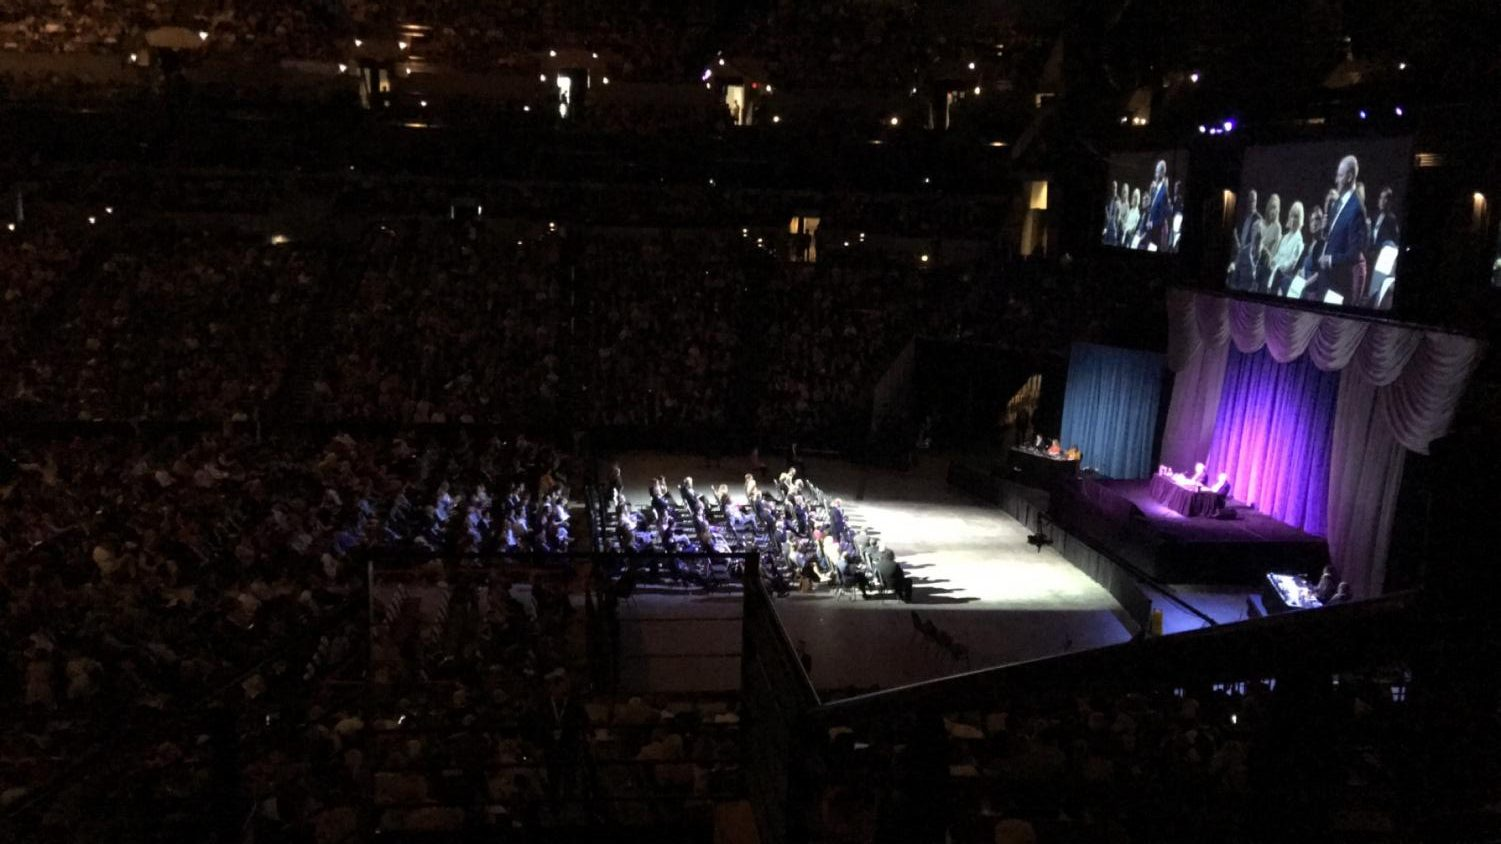 Warren Buffet and Charlie Munger answer questions from the audience at the Berkshire Hathaway Annual Shareholder's Meeting.